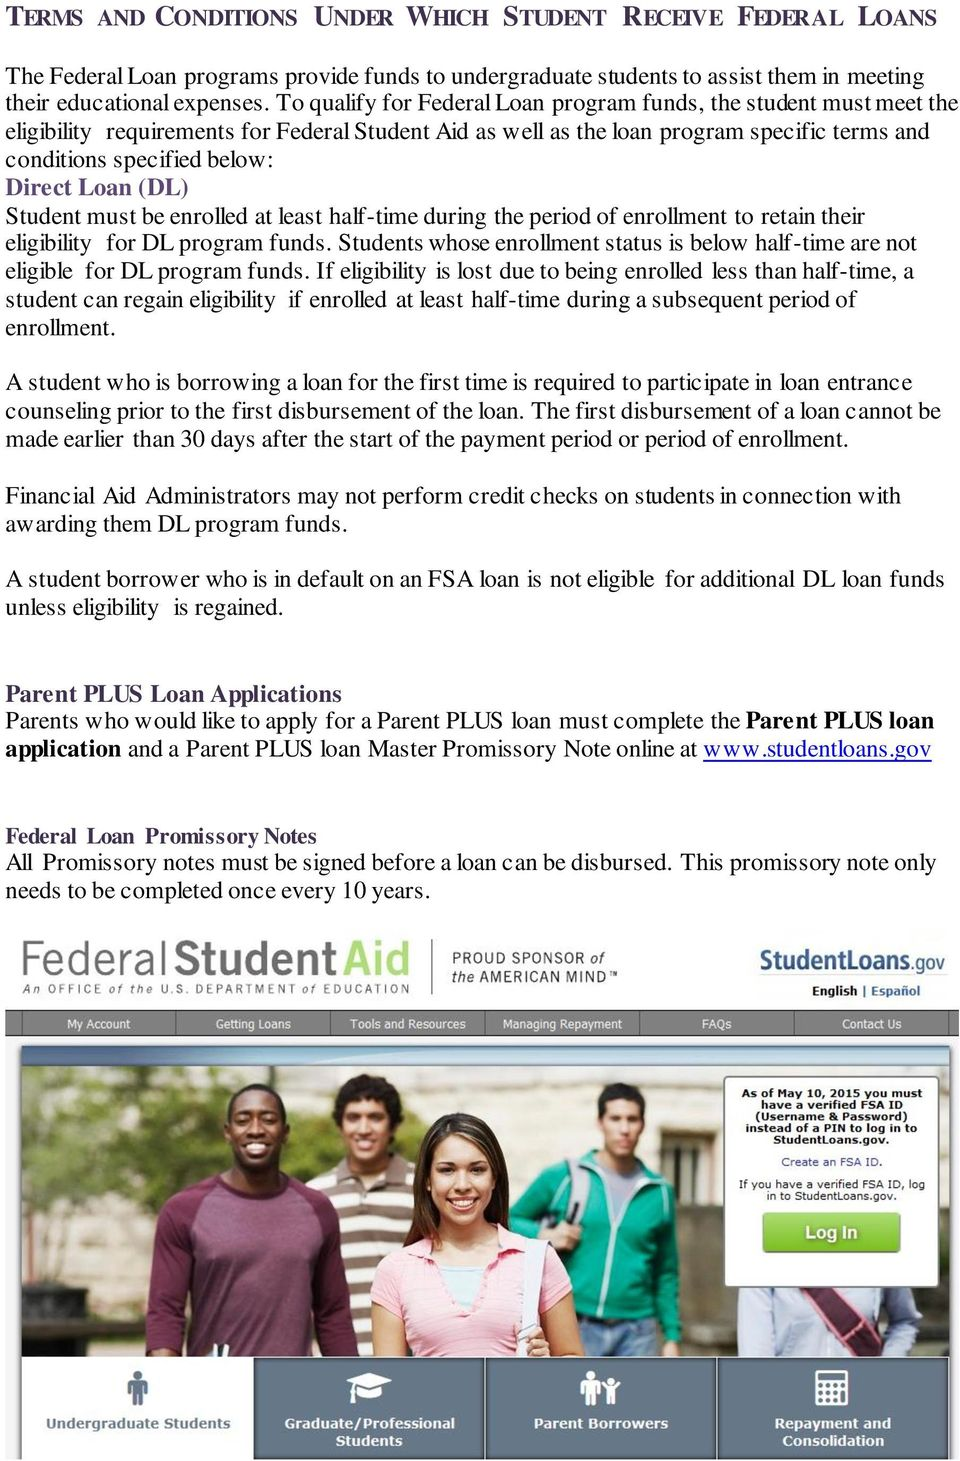 Loan (DL) Student must be enrolled at least half-time during the period of enrollment to retain their eligibility for DL program funds.